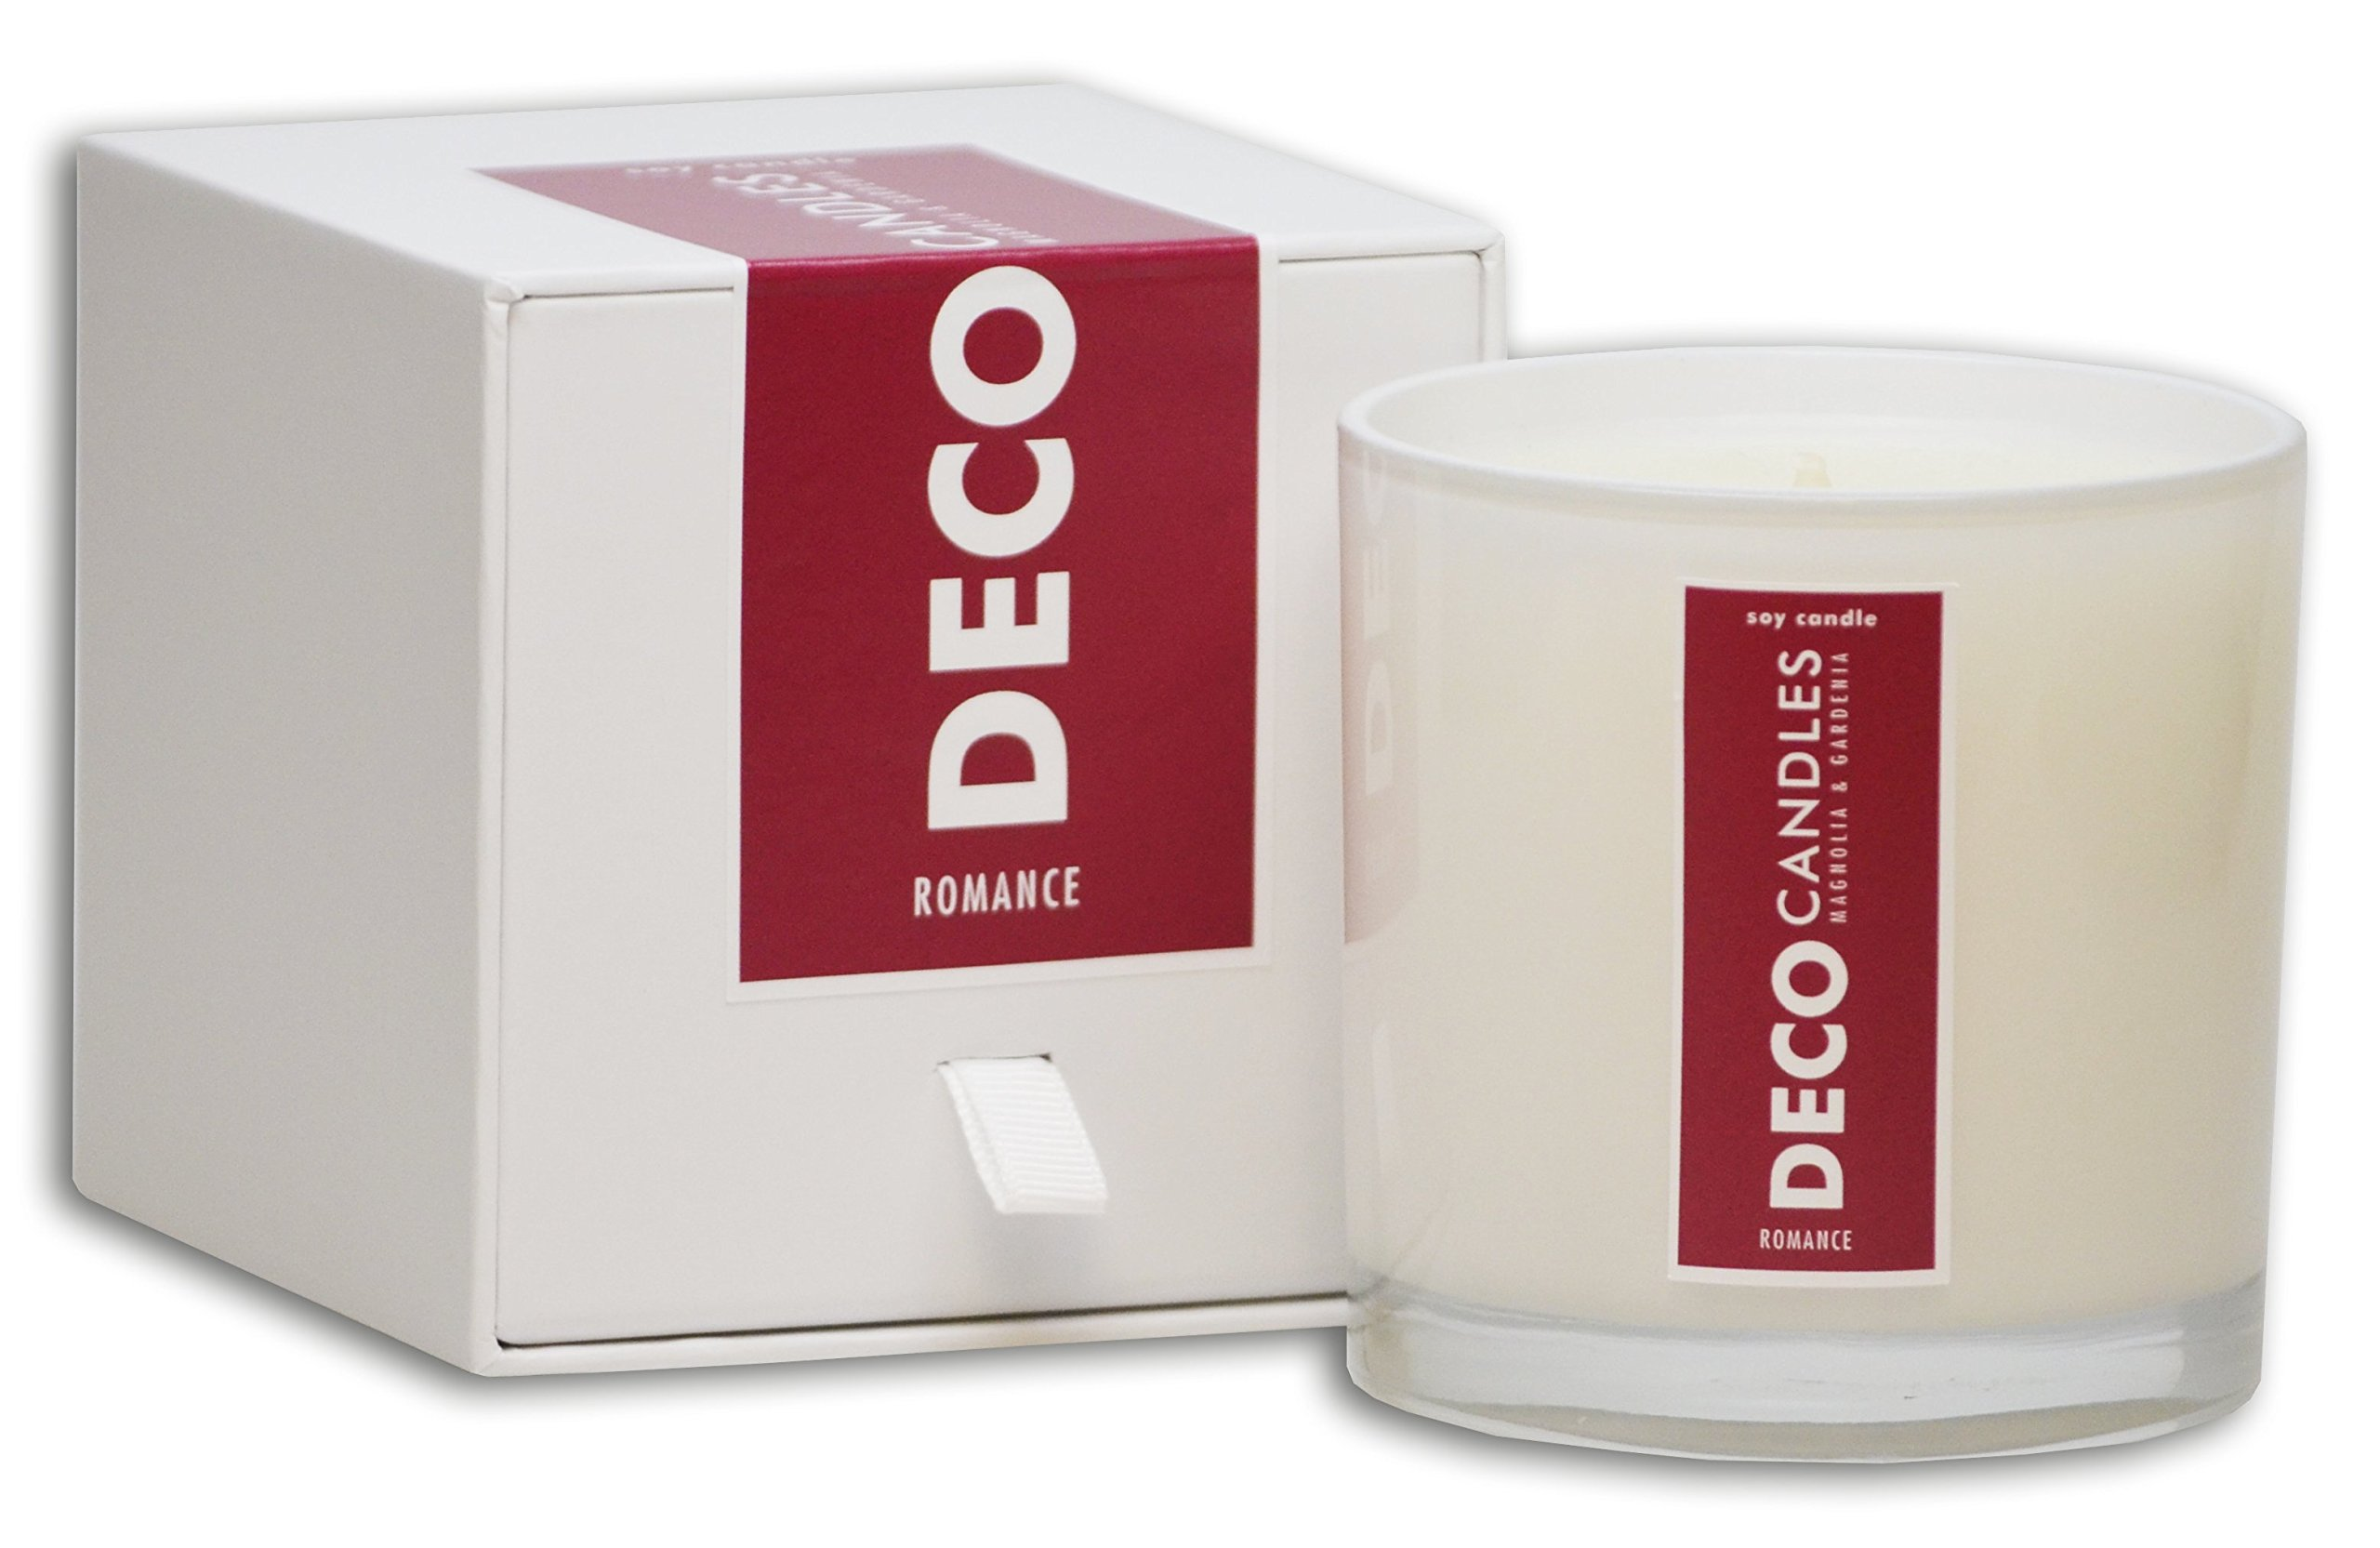 DecoCandleS | Romance- Magnolia & Gardenia - Highly Scented Candle - Long Lasting - Hand poured in the USA - Hotel Inspired Collection - 9 Oz.